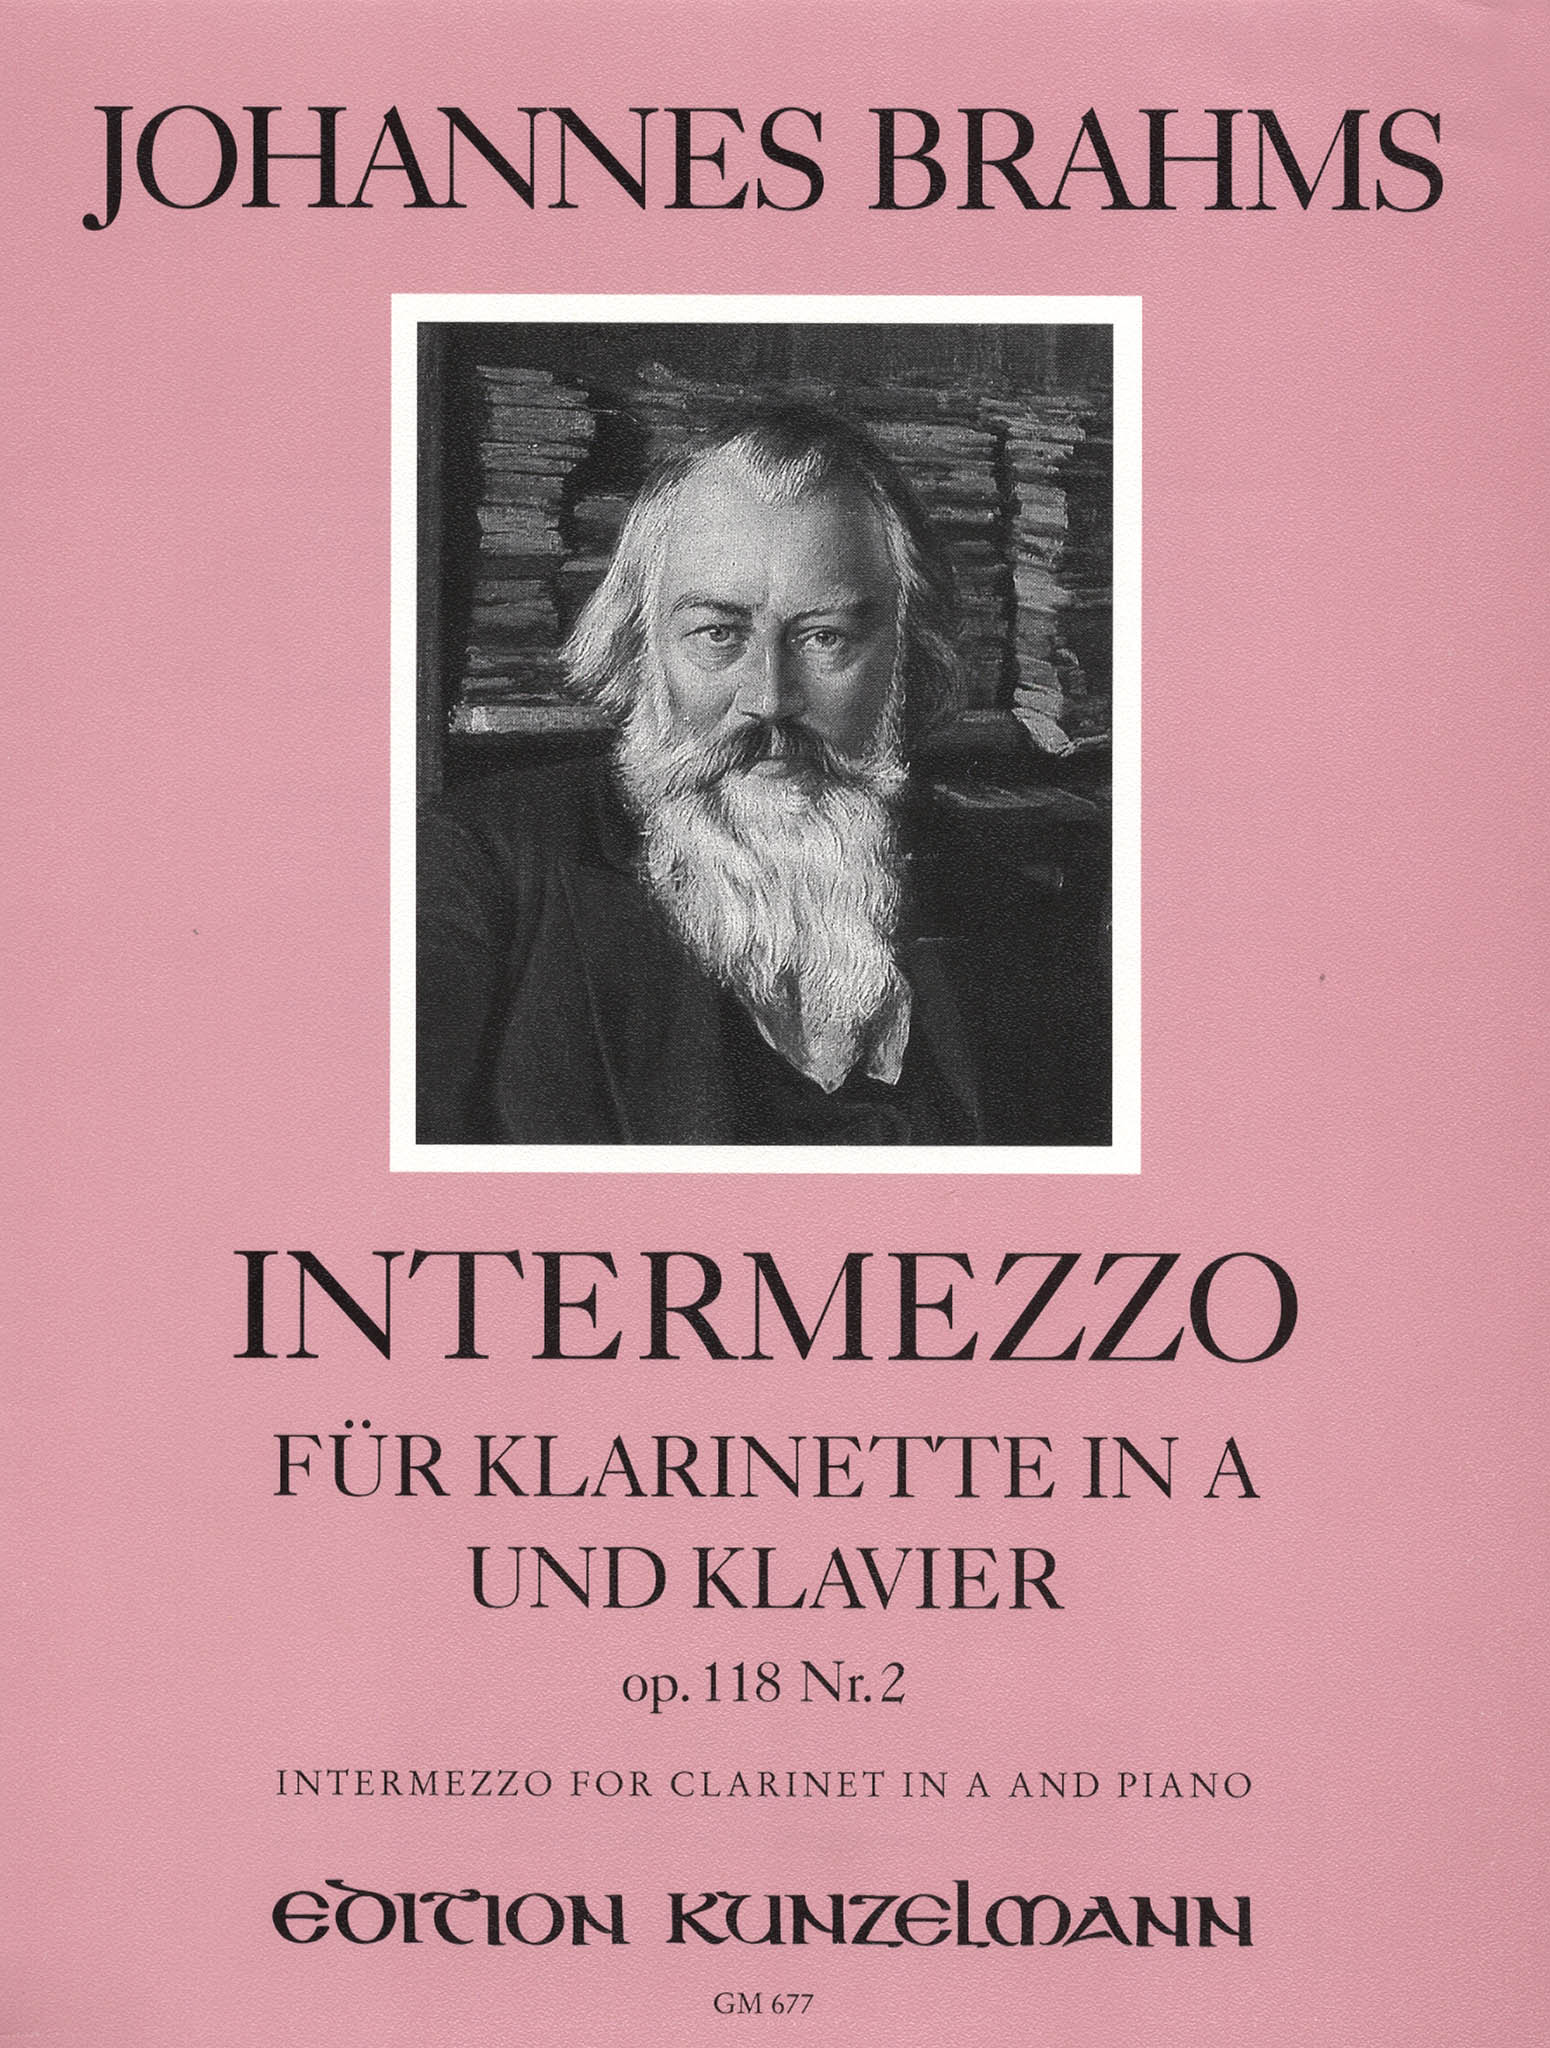 Intermezzo, Op. 118 No. 2 Cover